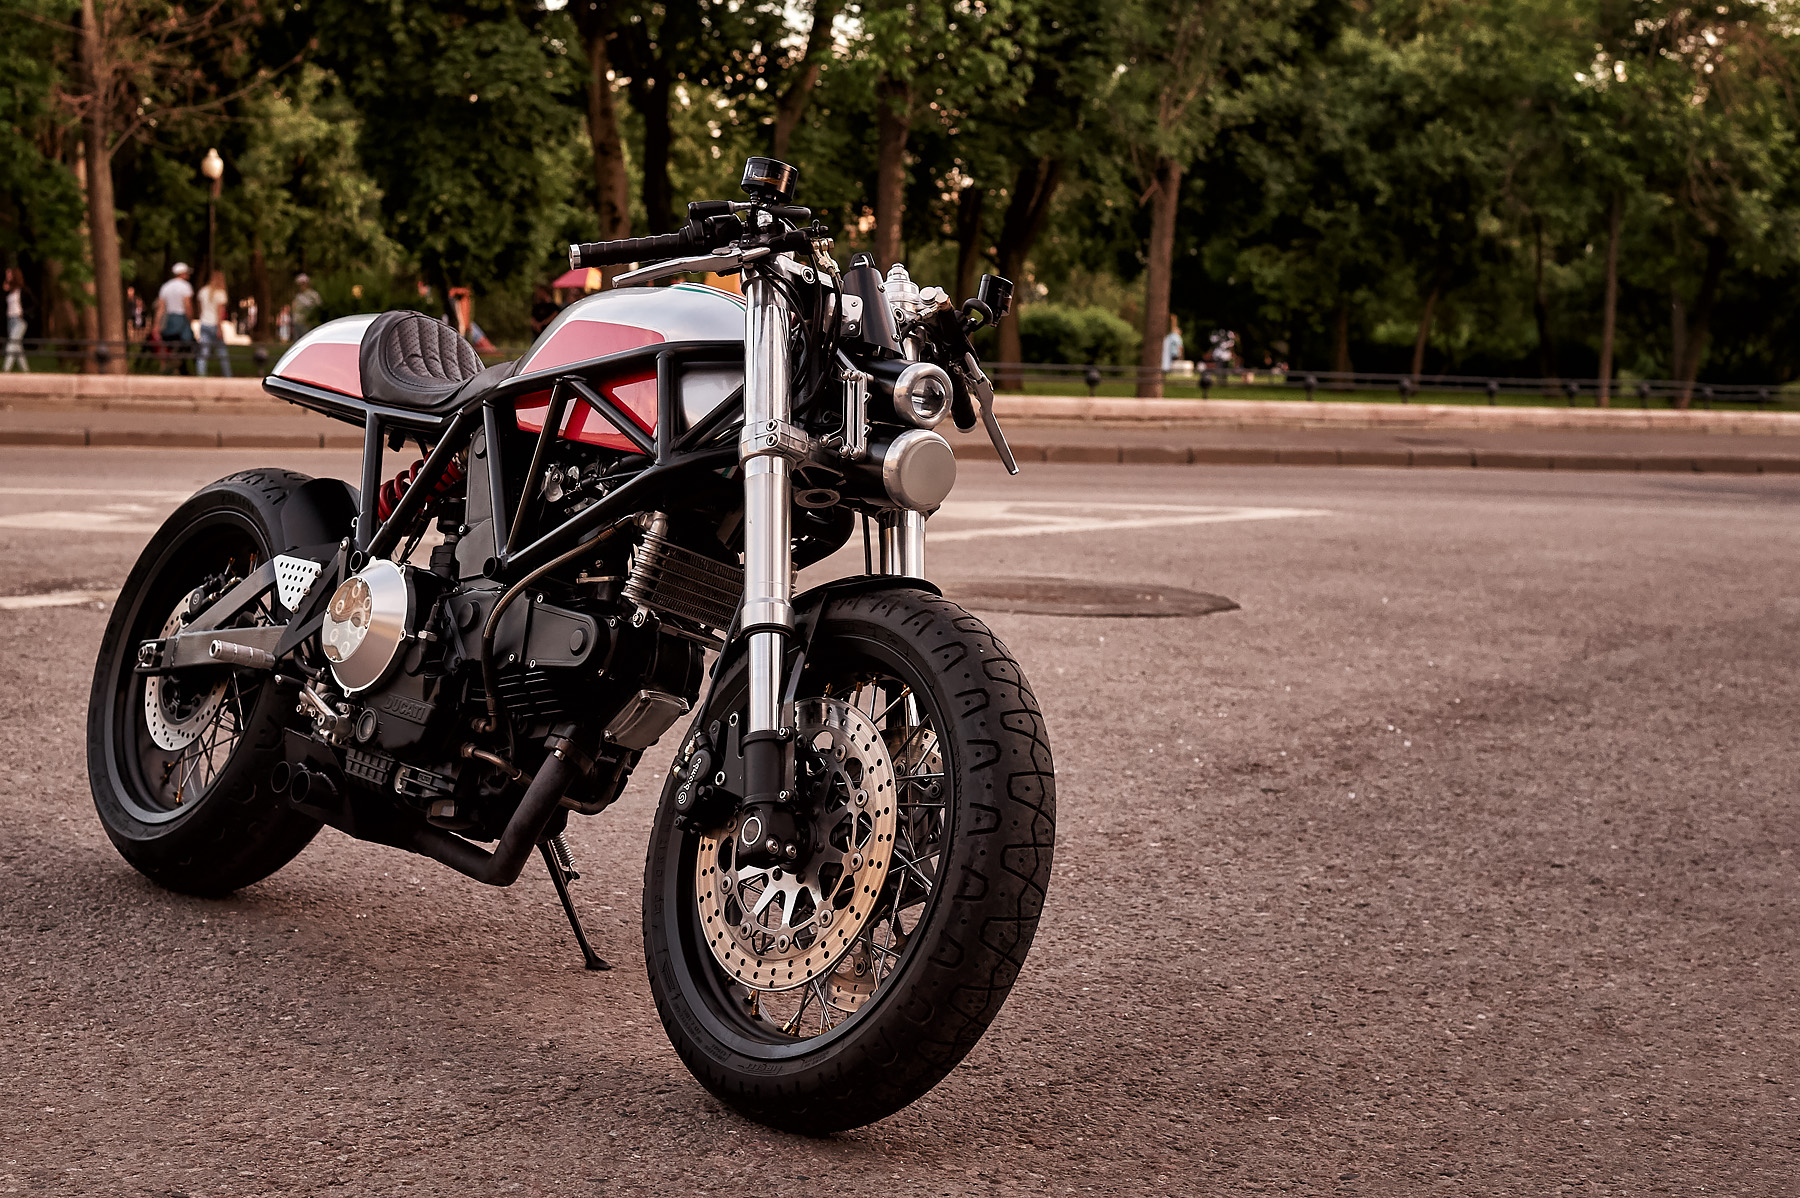 Ducati Super Sport 900 Birdie Customs Ducati SS900